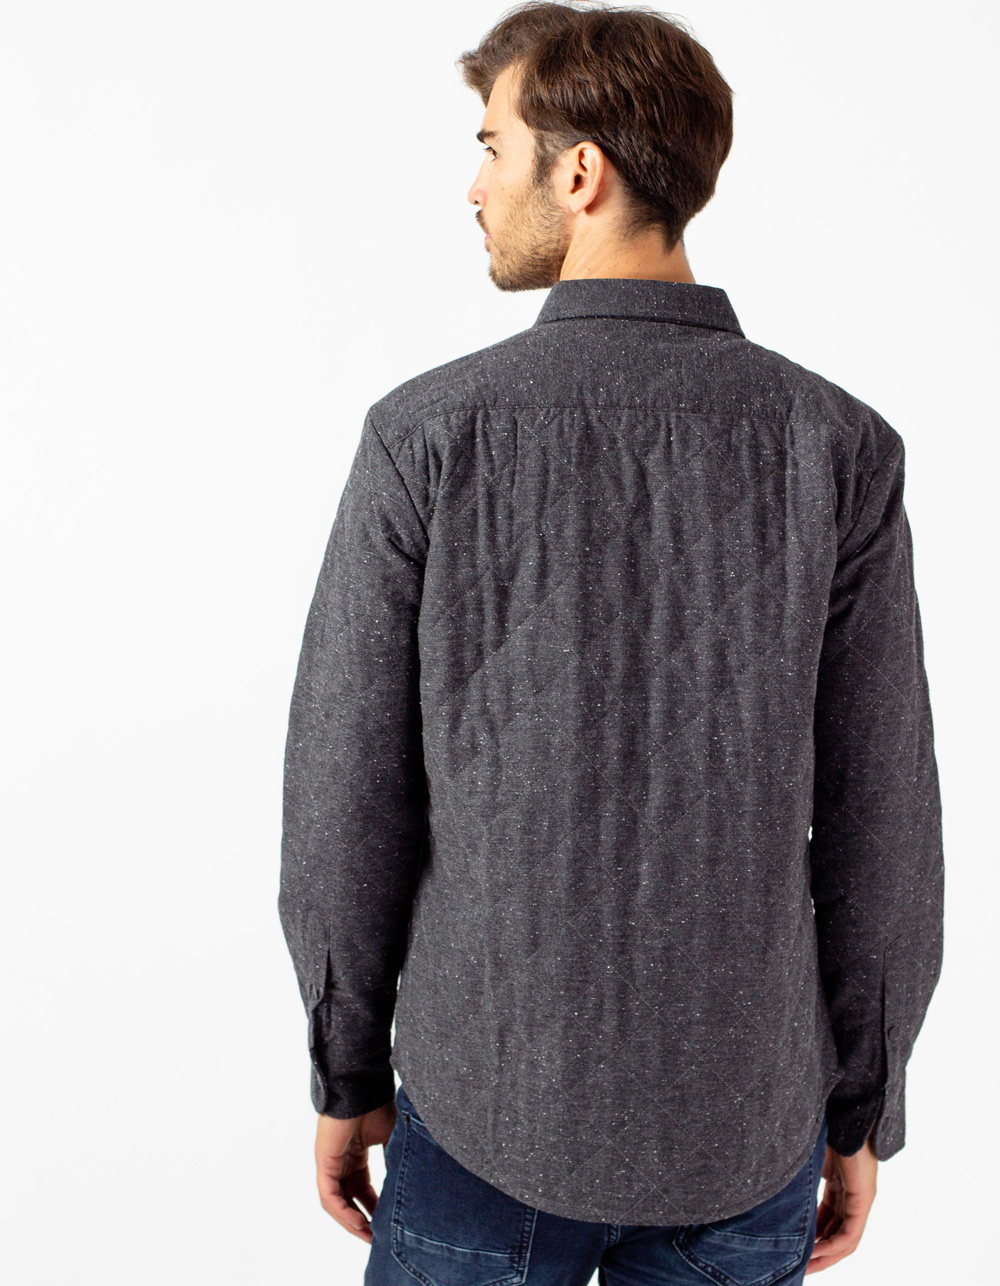 Charcoal grey quilted overshirt - Backside